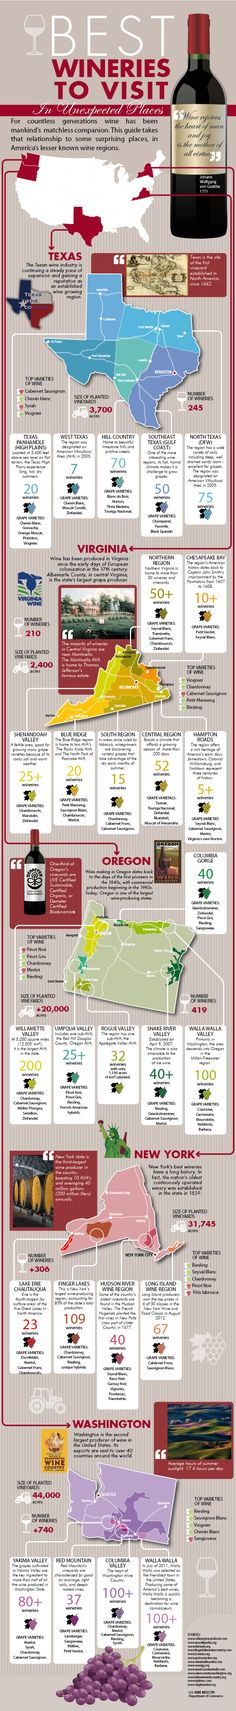 Confused why California isnt on here??? And how did I not know there were 75 wineries near me?! What have I been doing the past 2 years?!